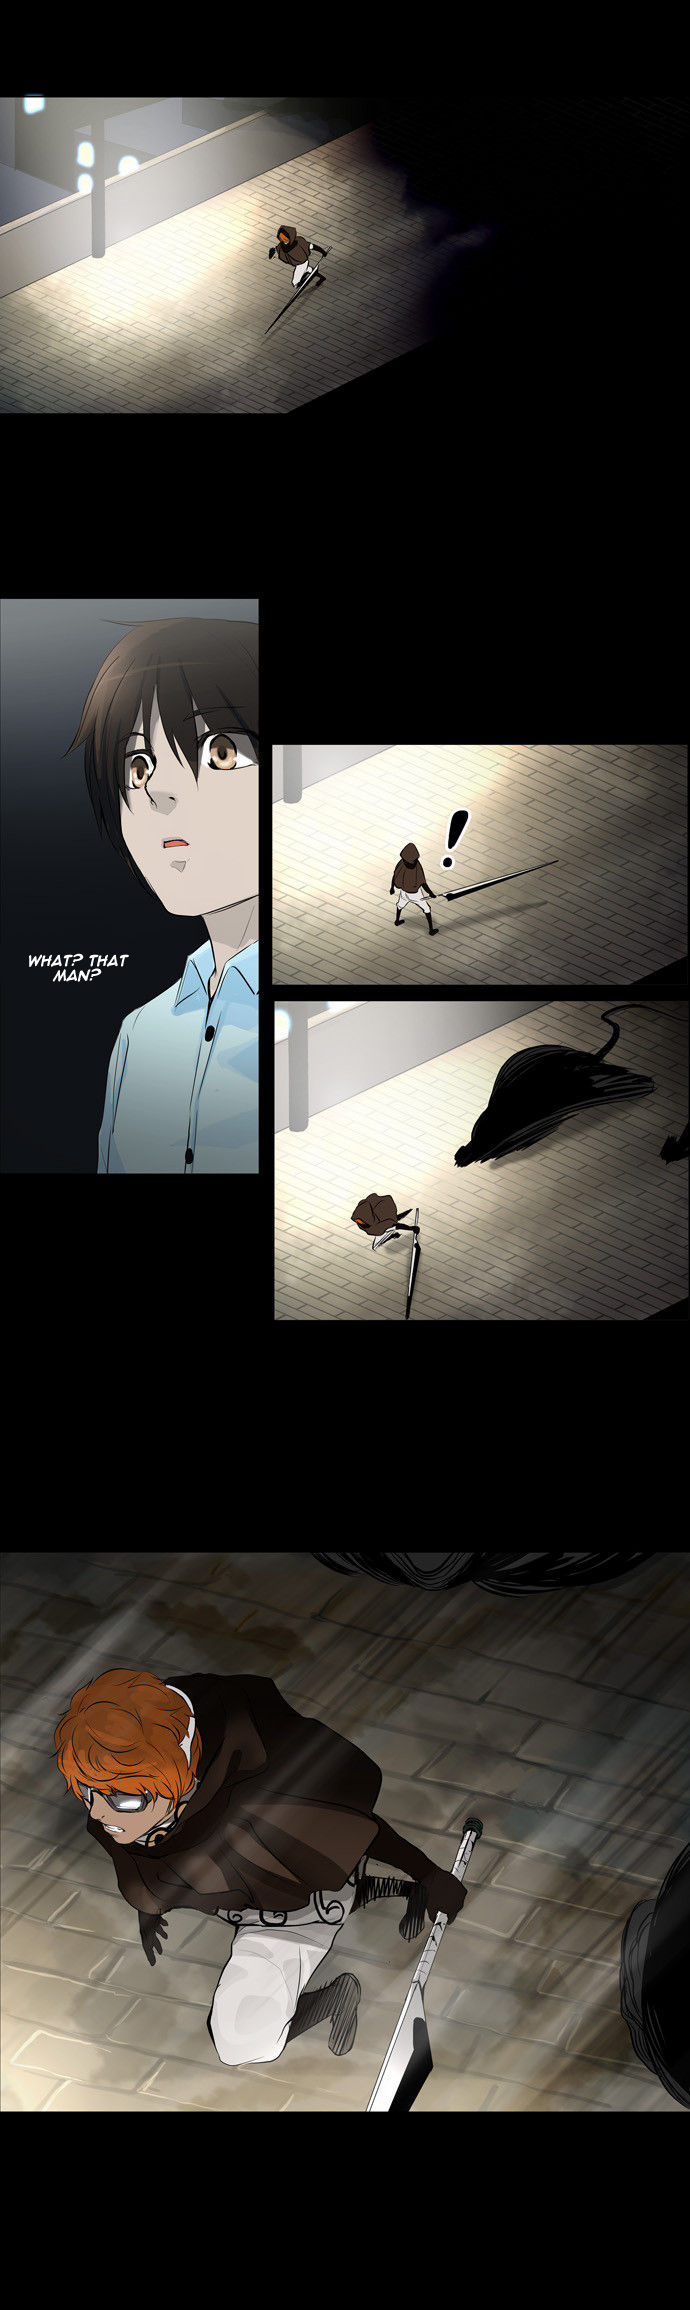 Tower of God 137 Page 2